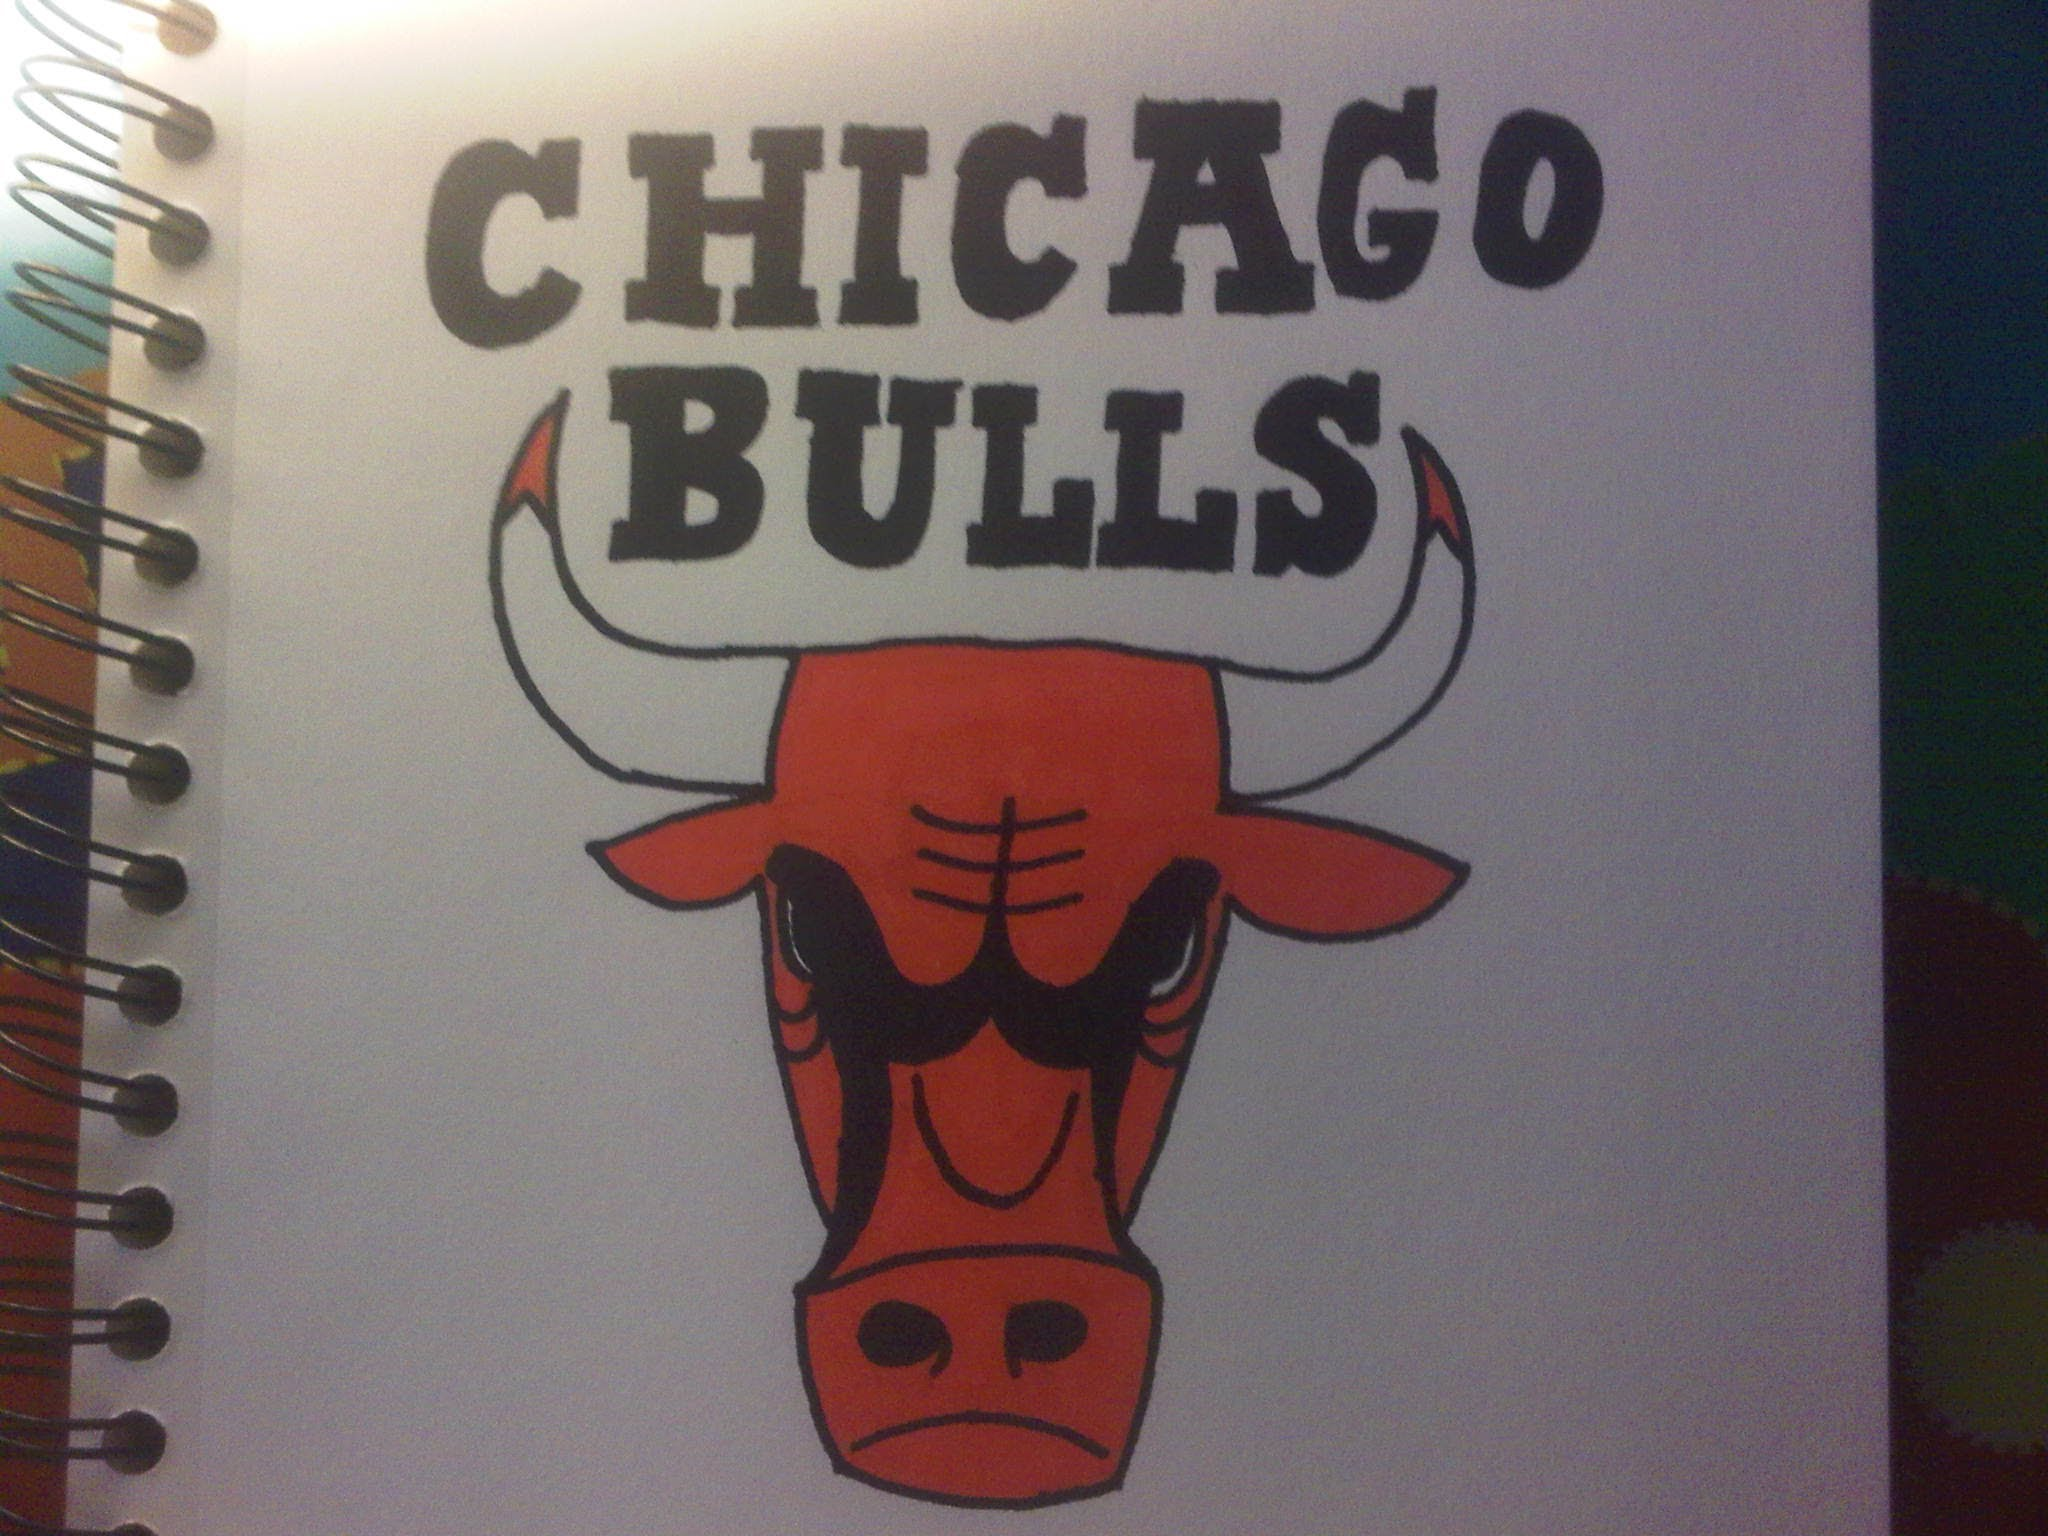 2048x1536 How To Draw The Chicago Bulls Logo